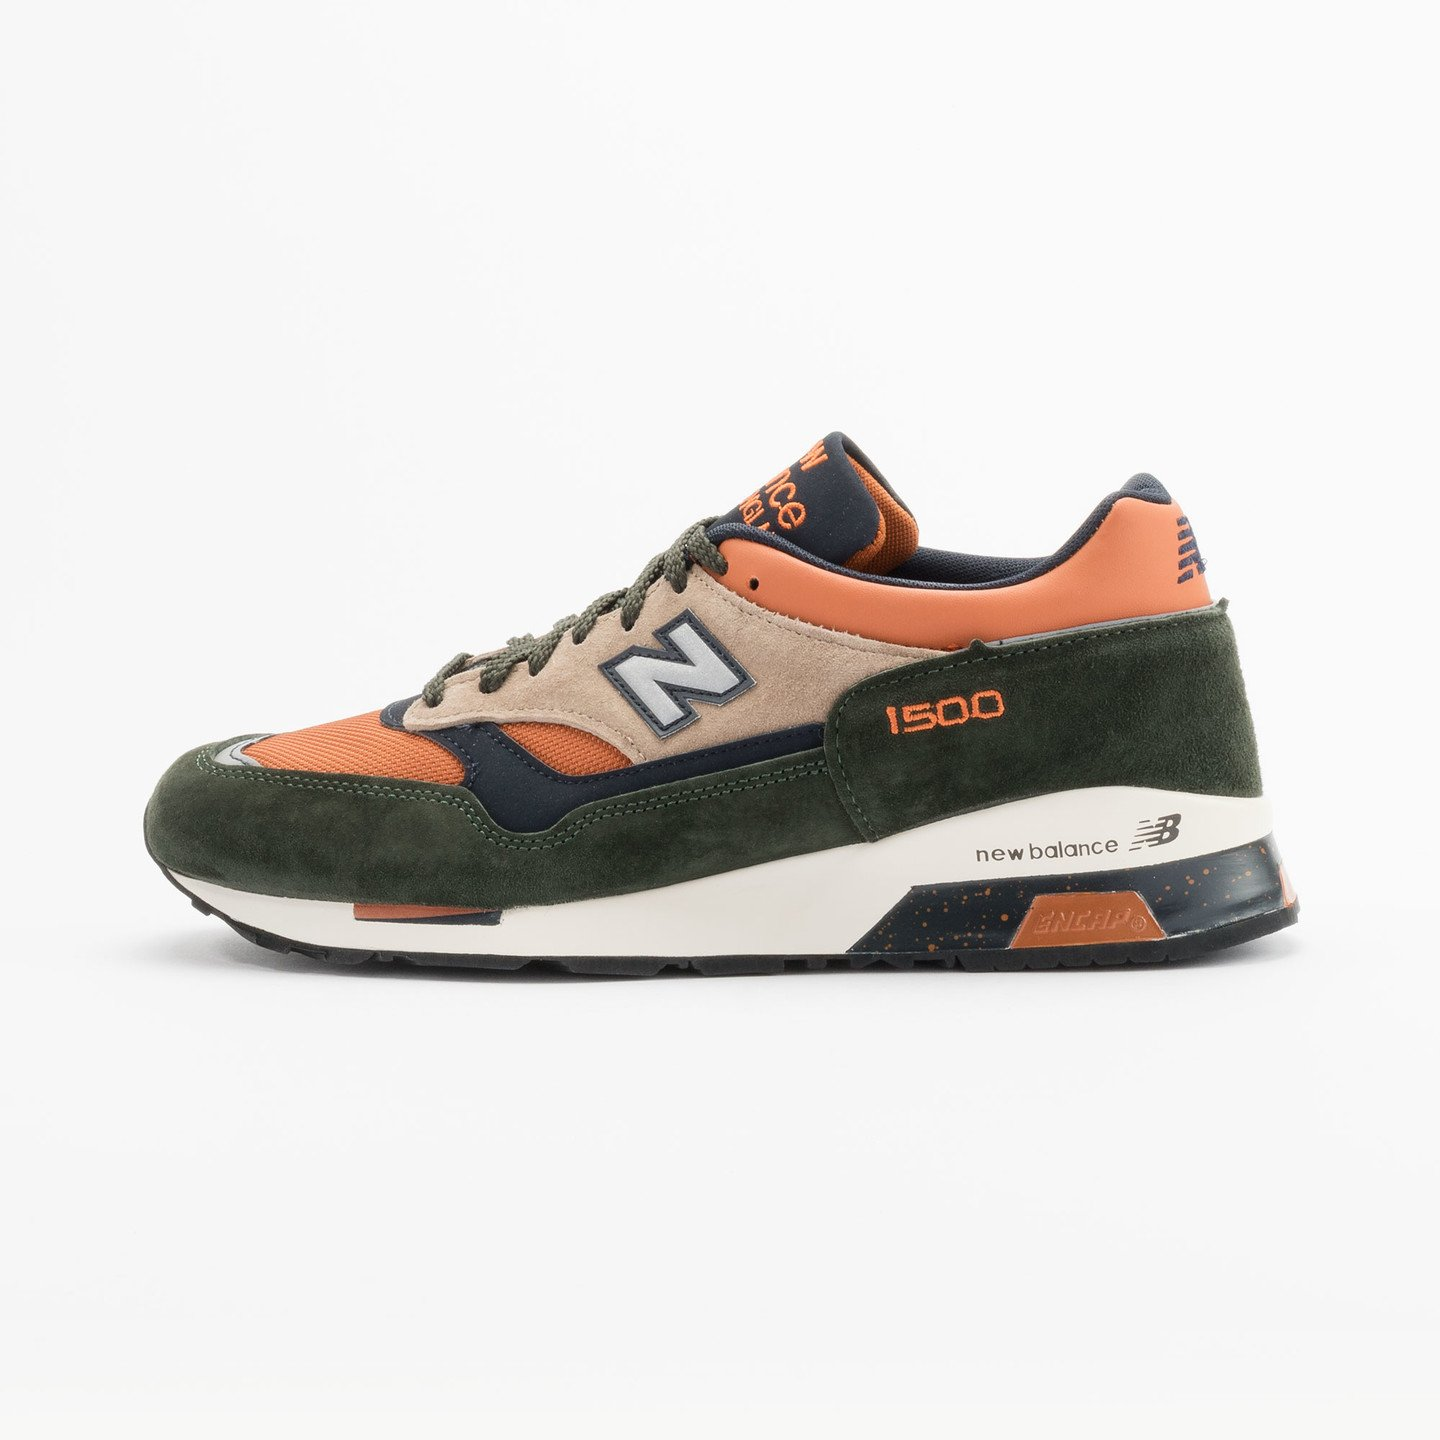 New Balance M1500 RO - Made in England Green / Orange M1500RO-45